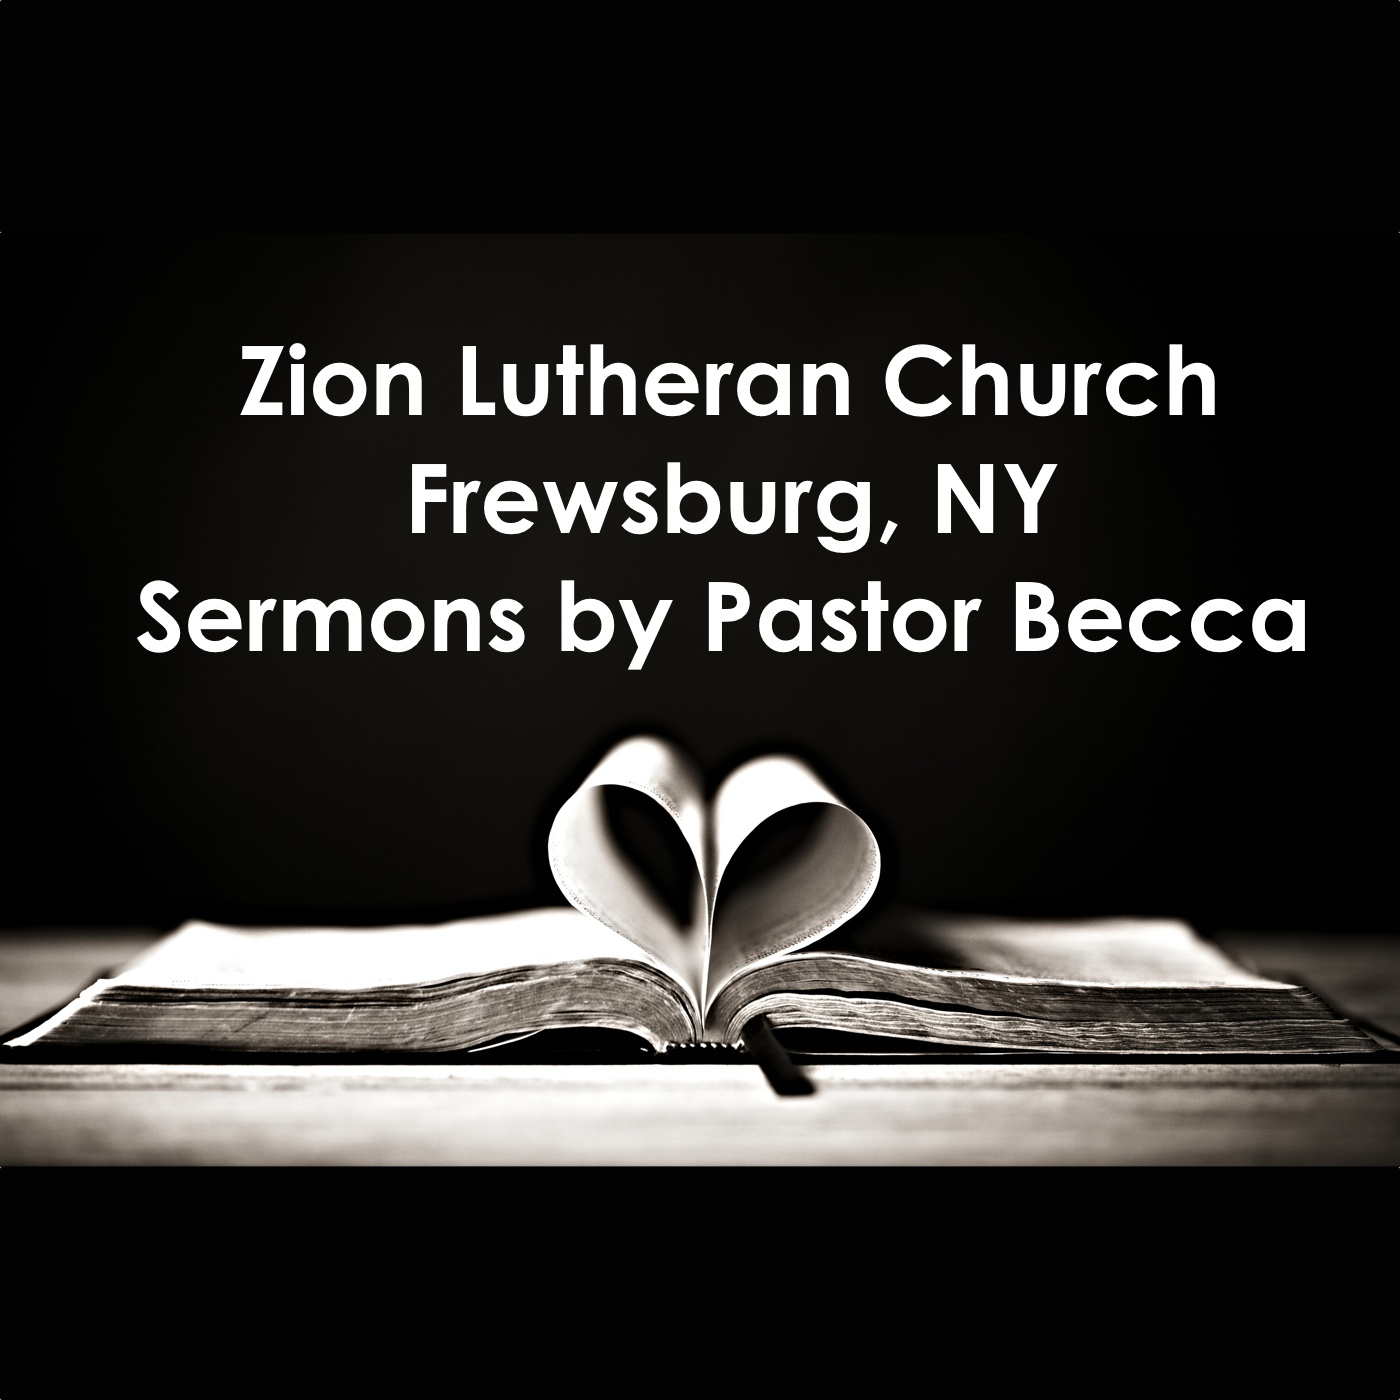 Zion Lutheran Church Frewsburg - Sermons by Pastor Becca